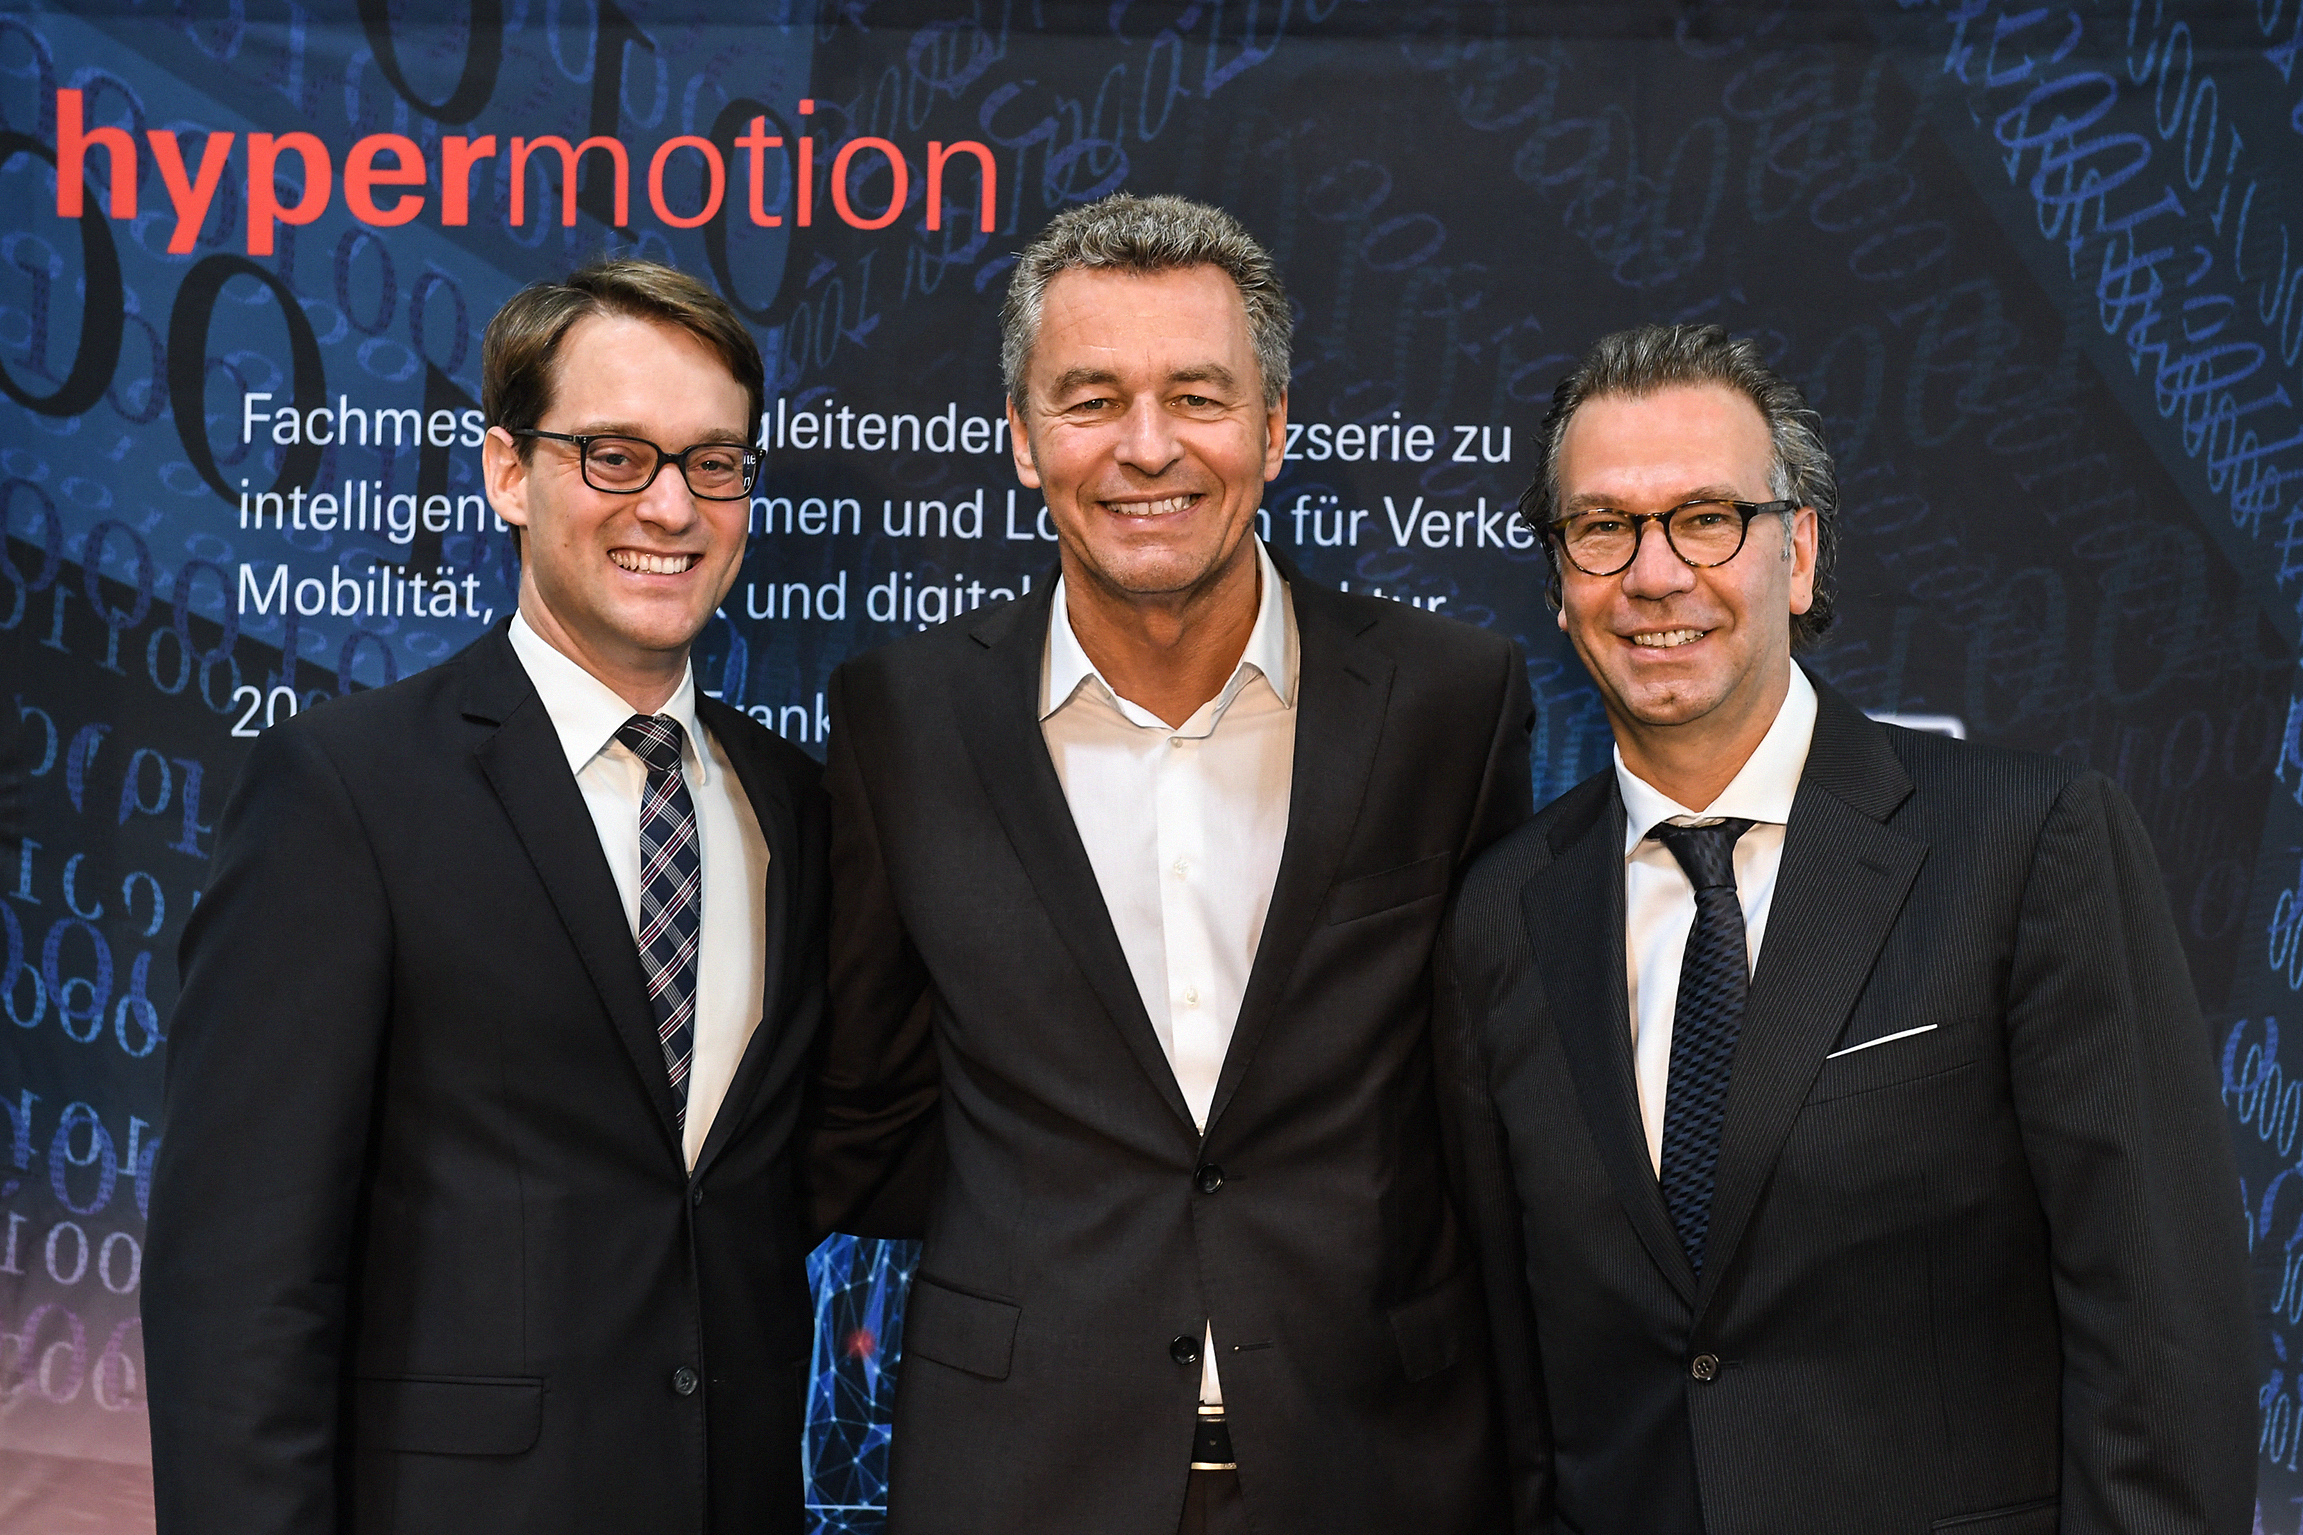 f.l.t.r. Danilo Kirschner - Event Manager Hypermotion, Detlef Braun - Member of the Executive Board of Messe Frankfurt GmbH, Michael Johannes - Vice President Mobility & Logistics